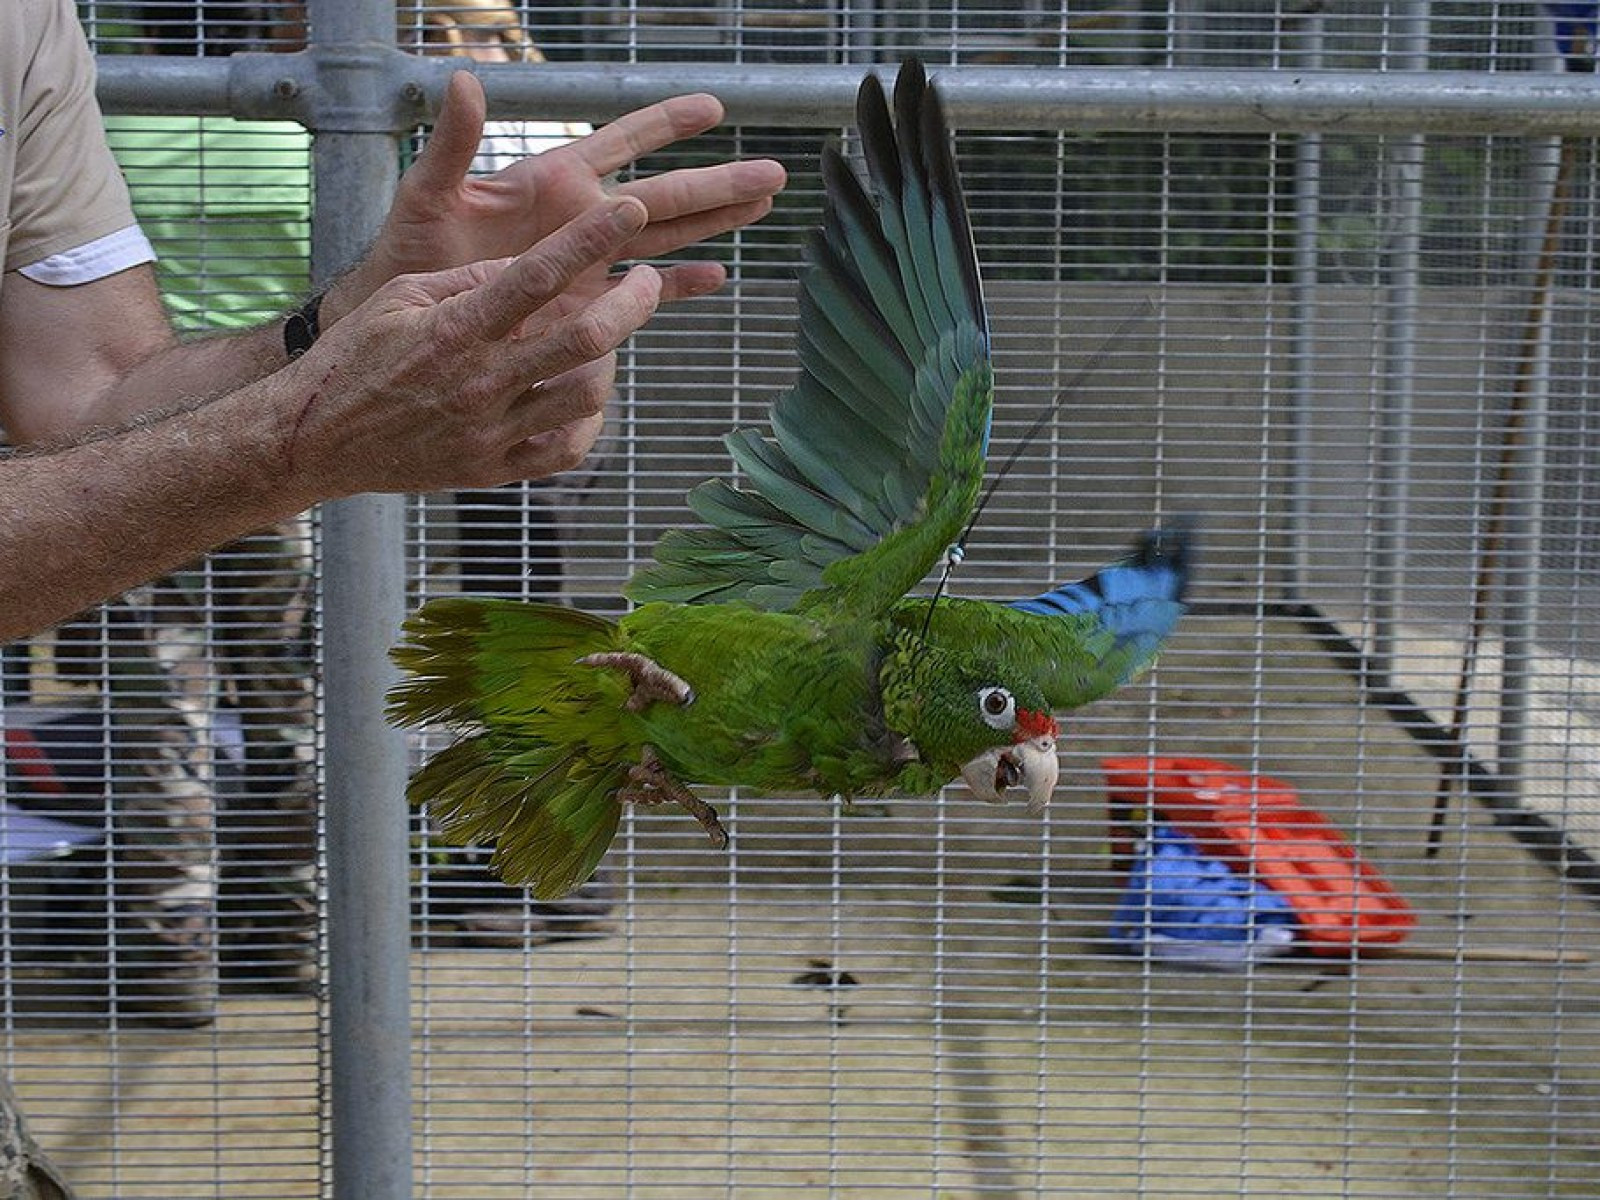 How 230 Endangered Parrots Survived Hurricane Irma in Puerto